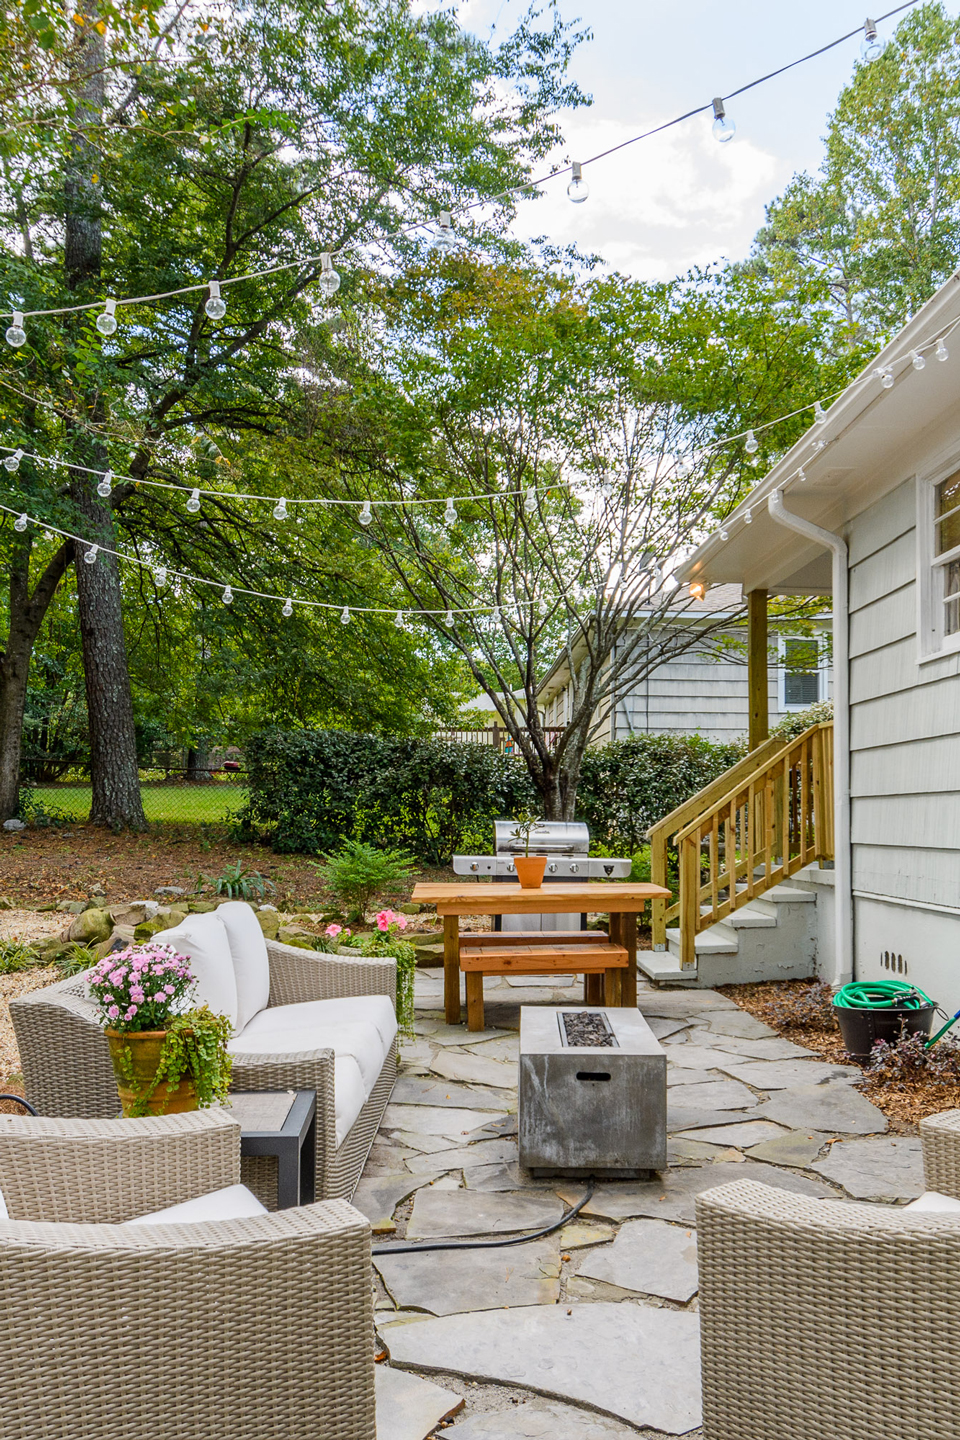 Backyard Before and After Makeover Ideas | Small Backyard ...